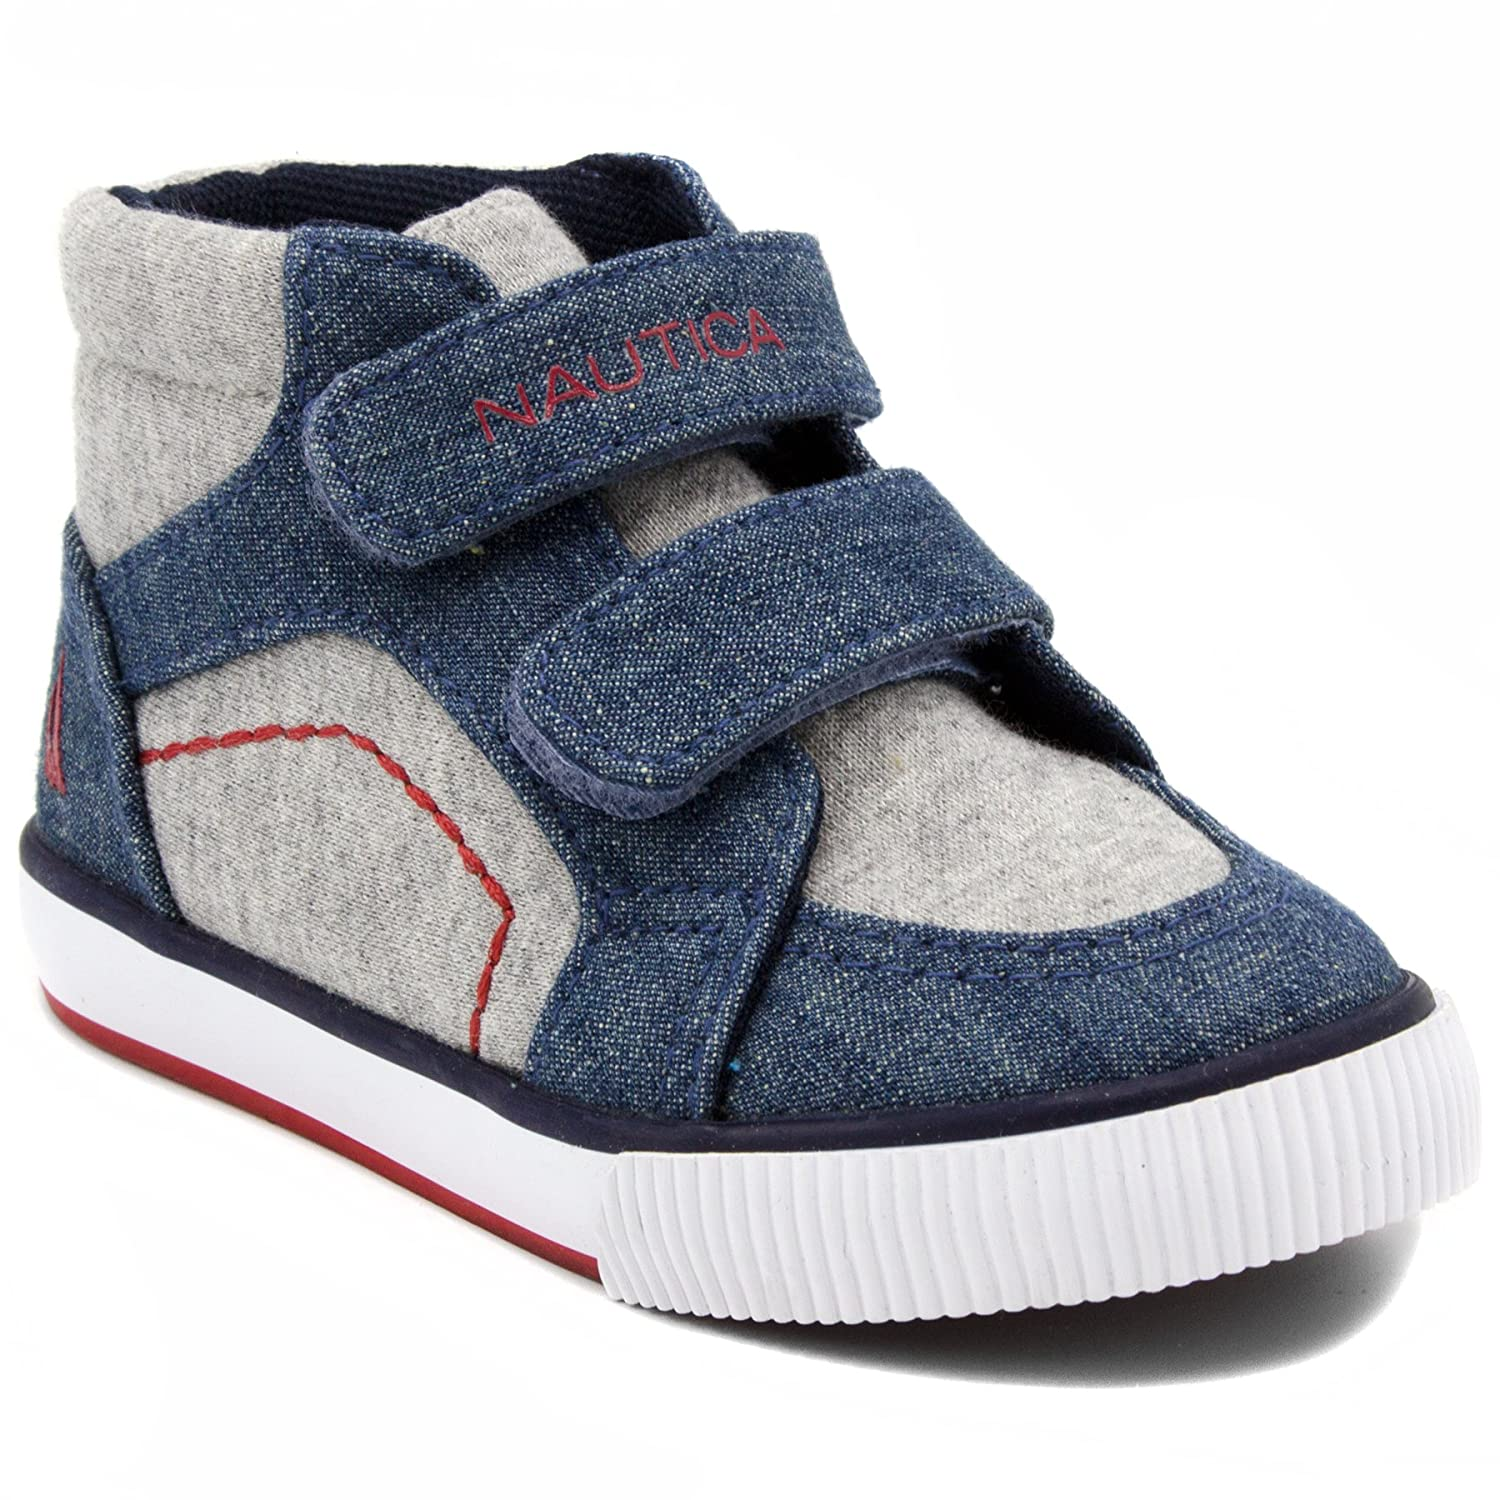 Nautica Kids Rig Canvas Adjustable Straps Sneaker Fashion Shoe Boot Like High Top (Toddler/Little Kid)